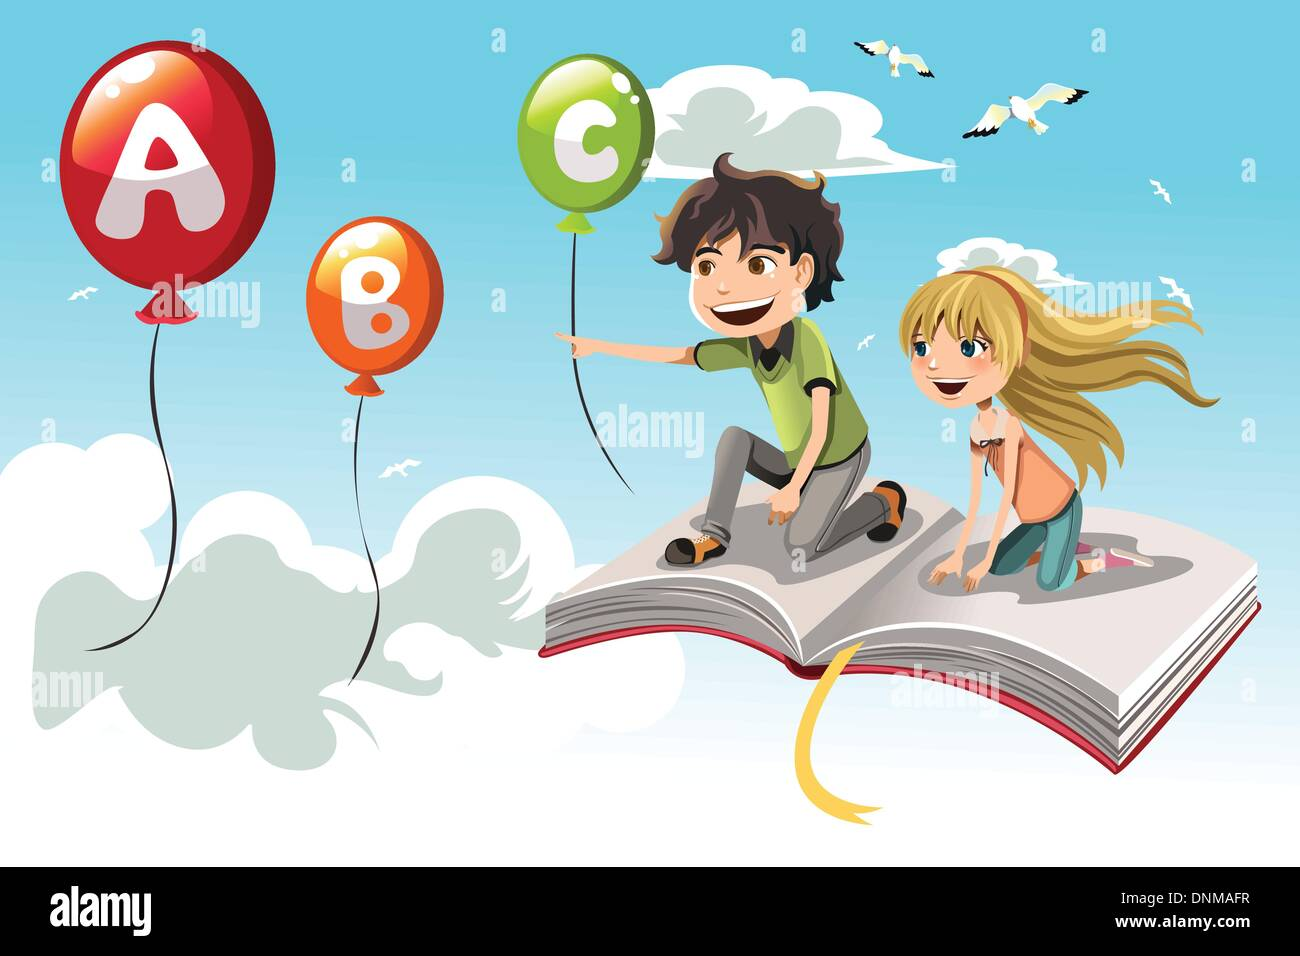 Vector Illustration Two Kids Learning Stock Photos & Vector ...